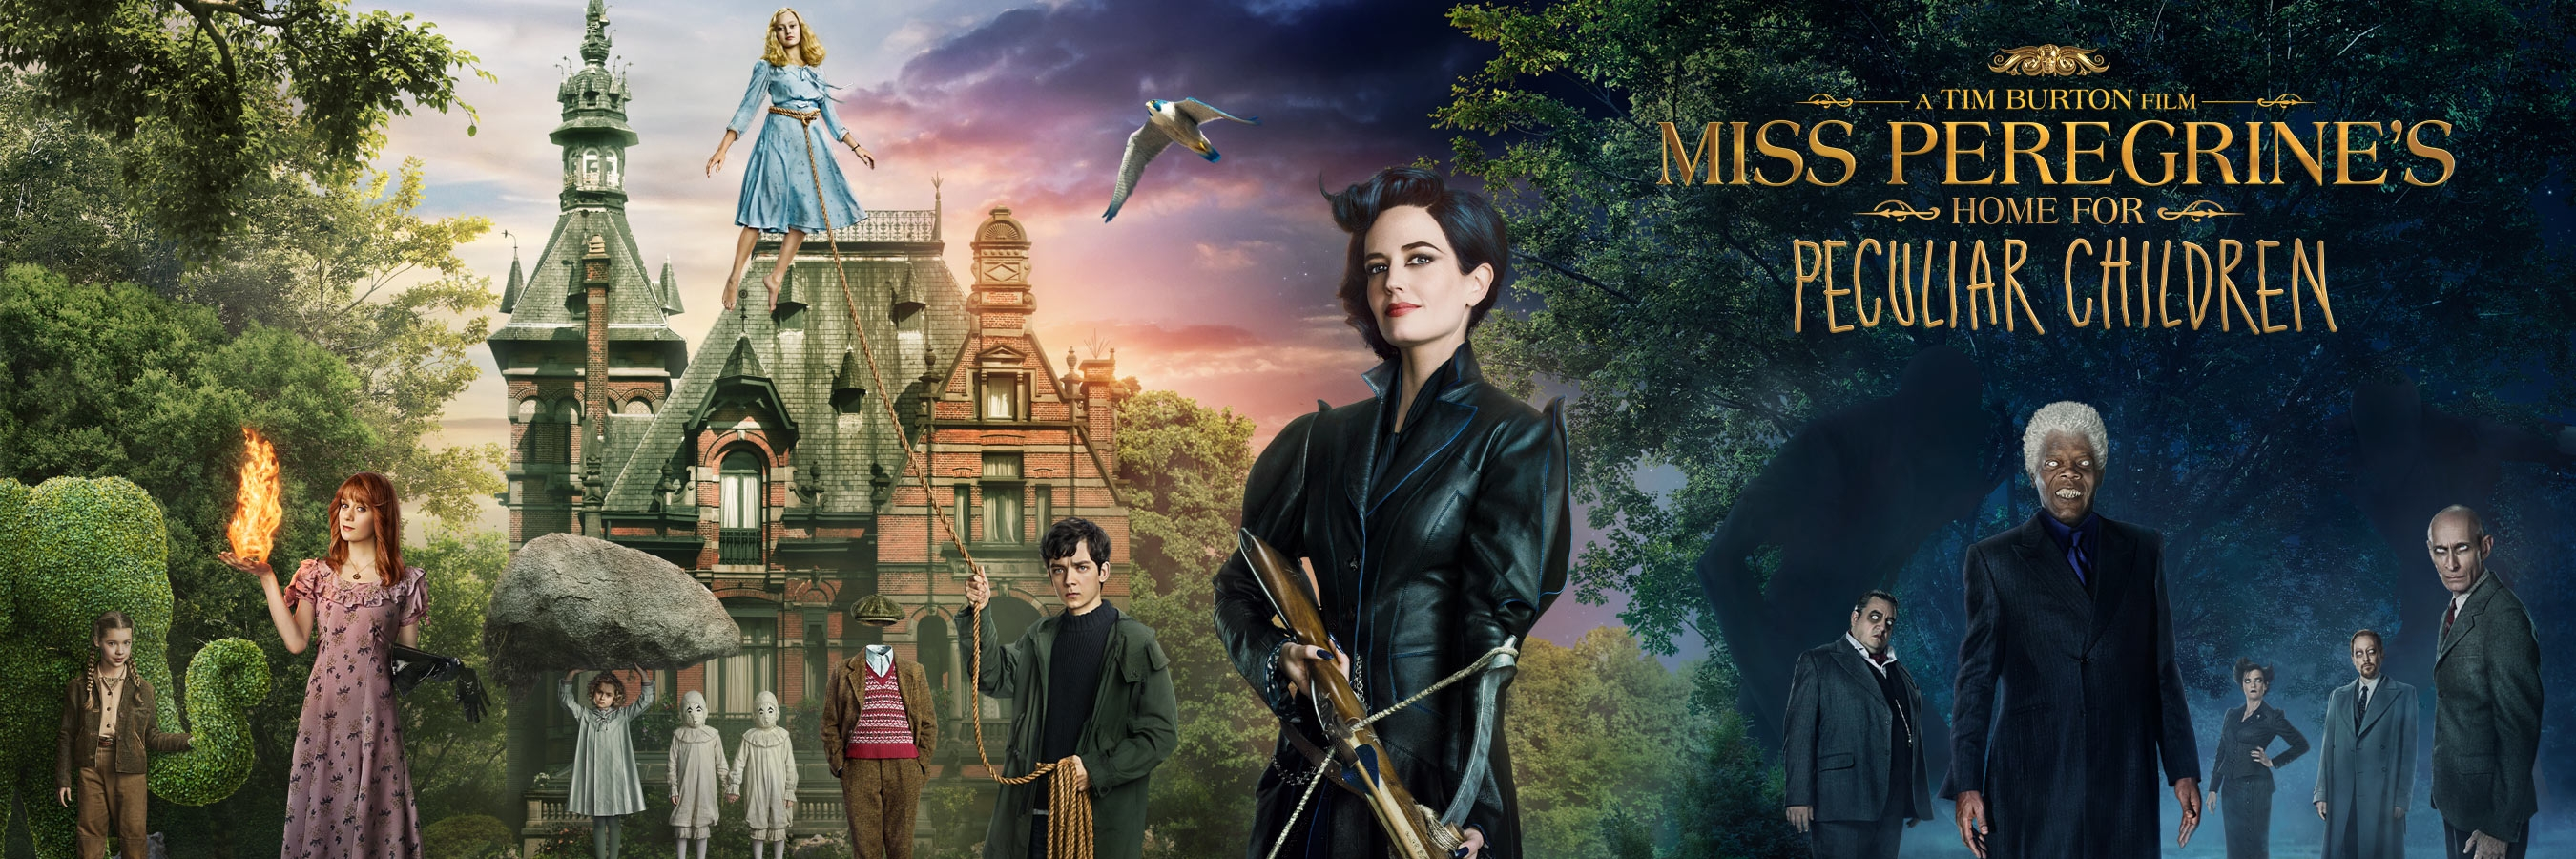 Check Out the New Trailer for 'Miss Peregrine's Home for Peculiar Children'